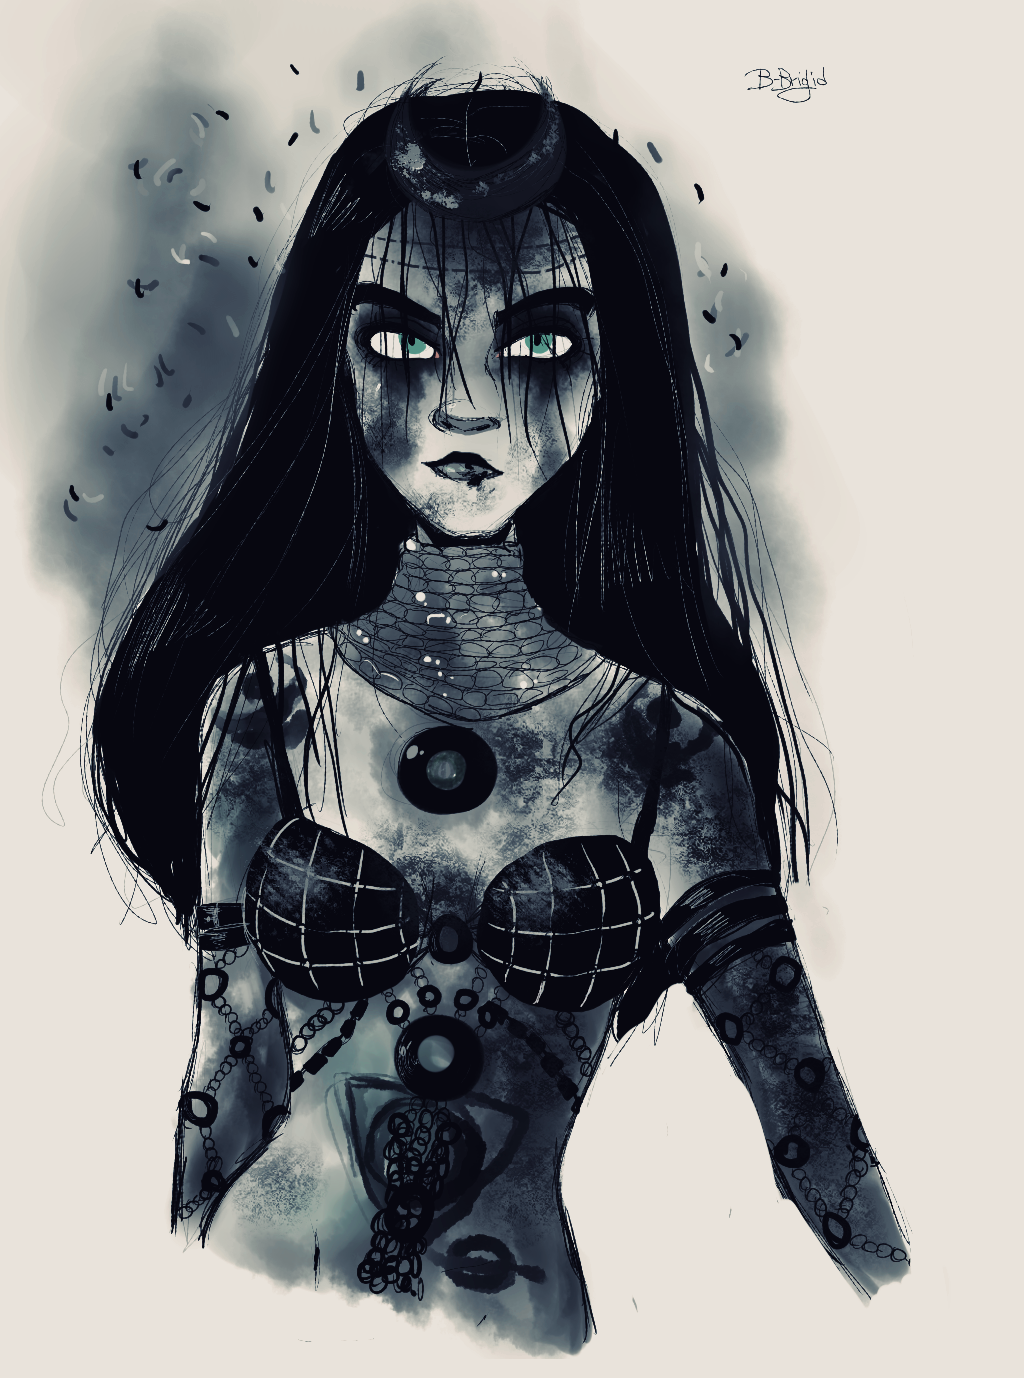 enchantress gif - Google Search